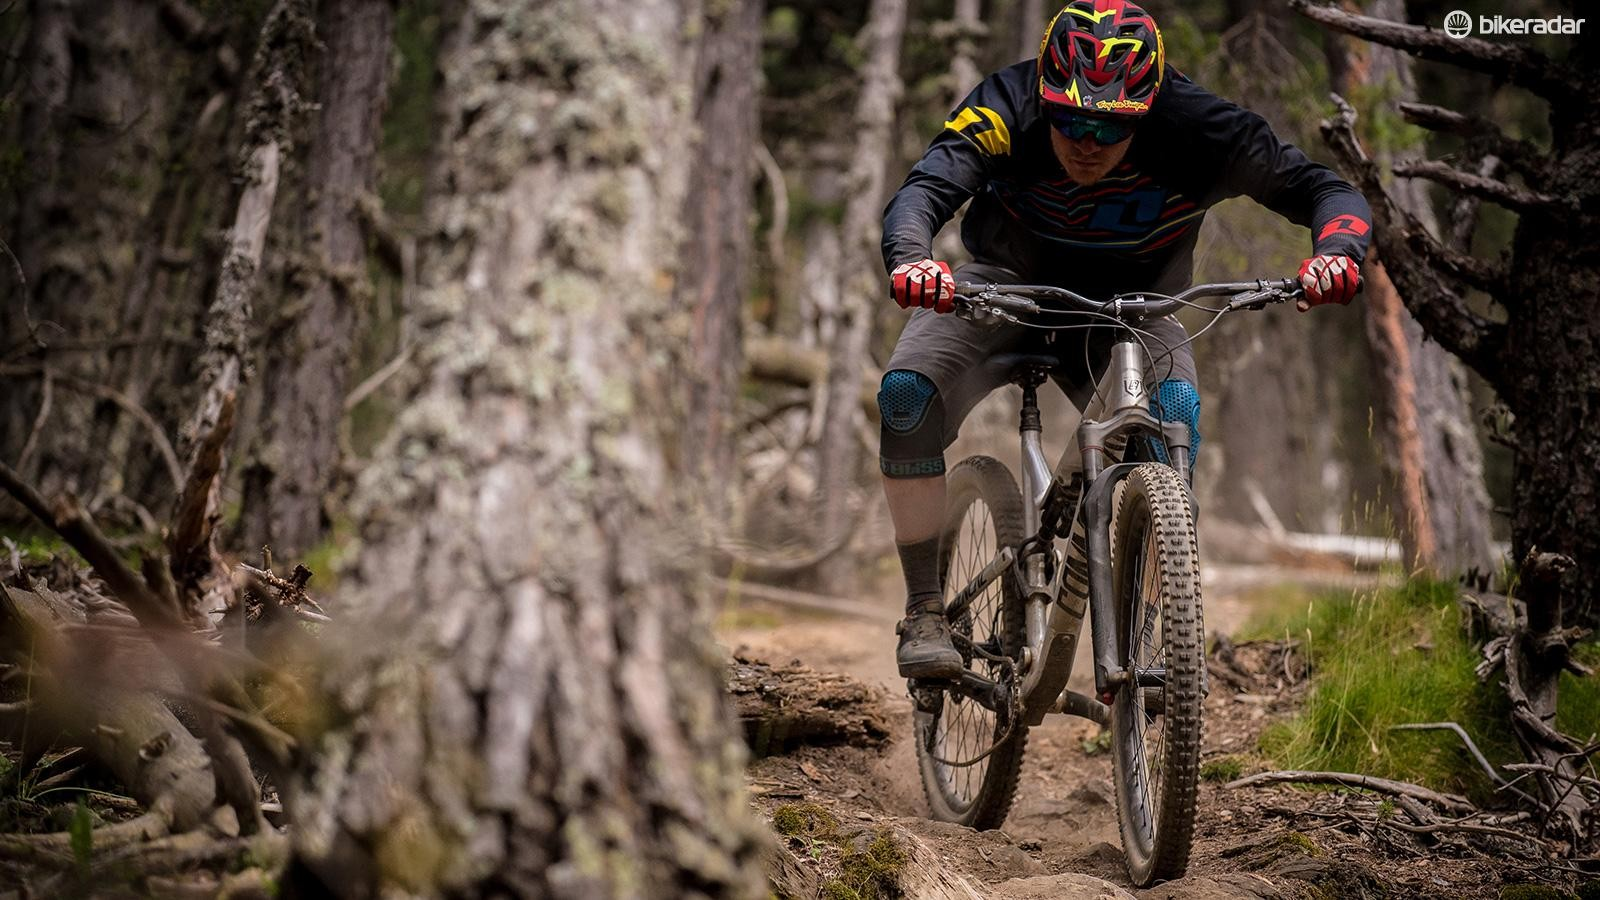 A couple of days riding in Andorra was a great introduction to the bike